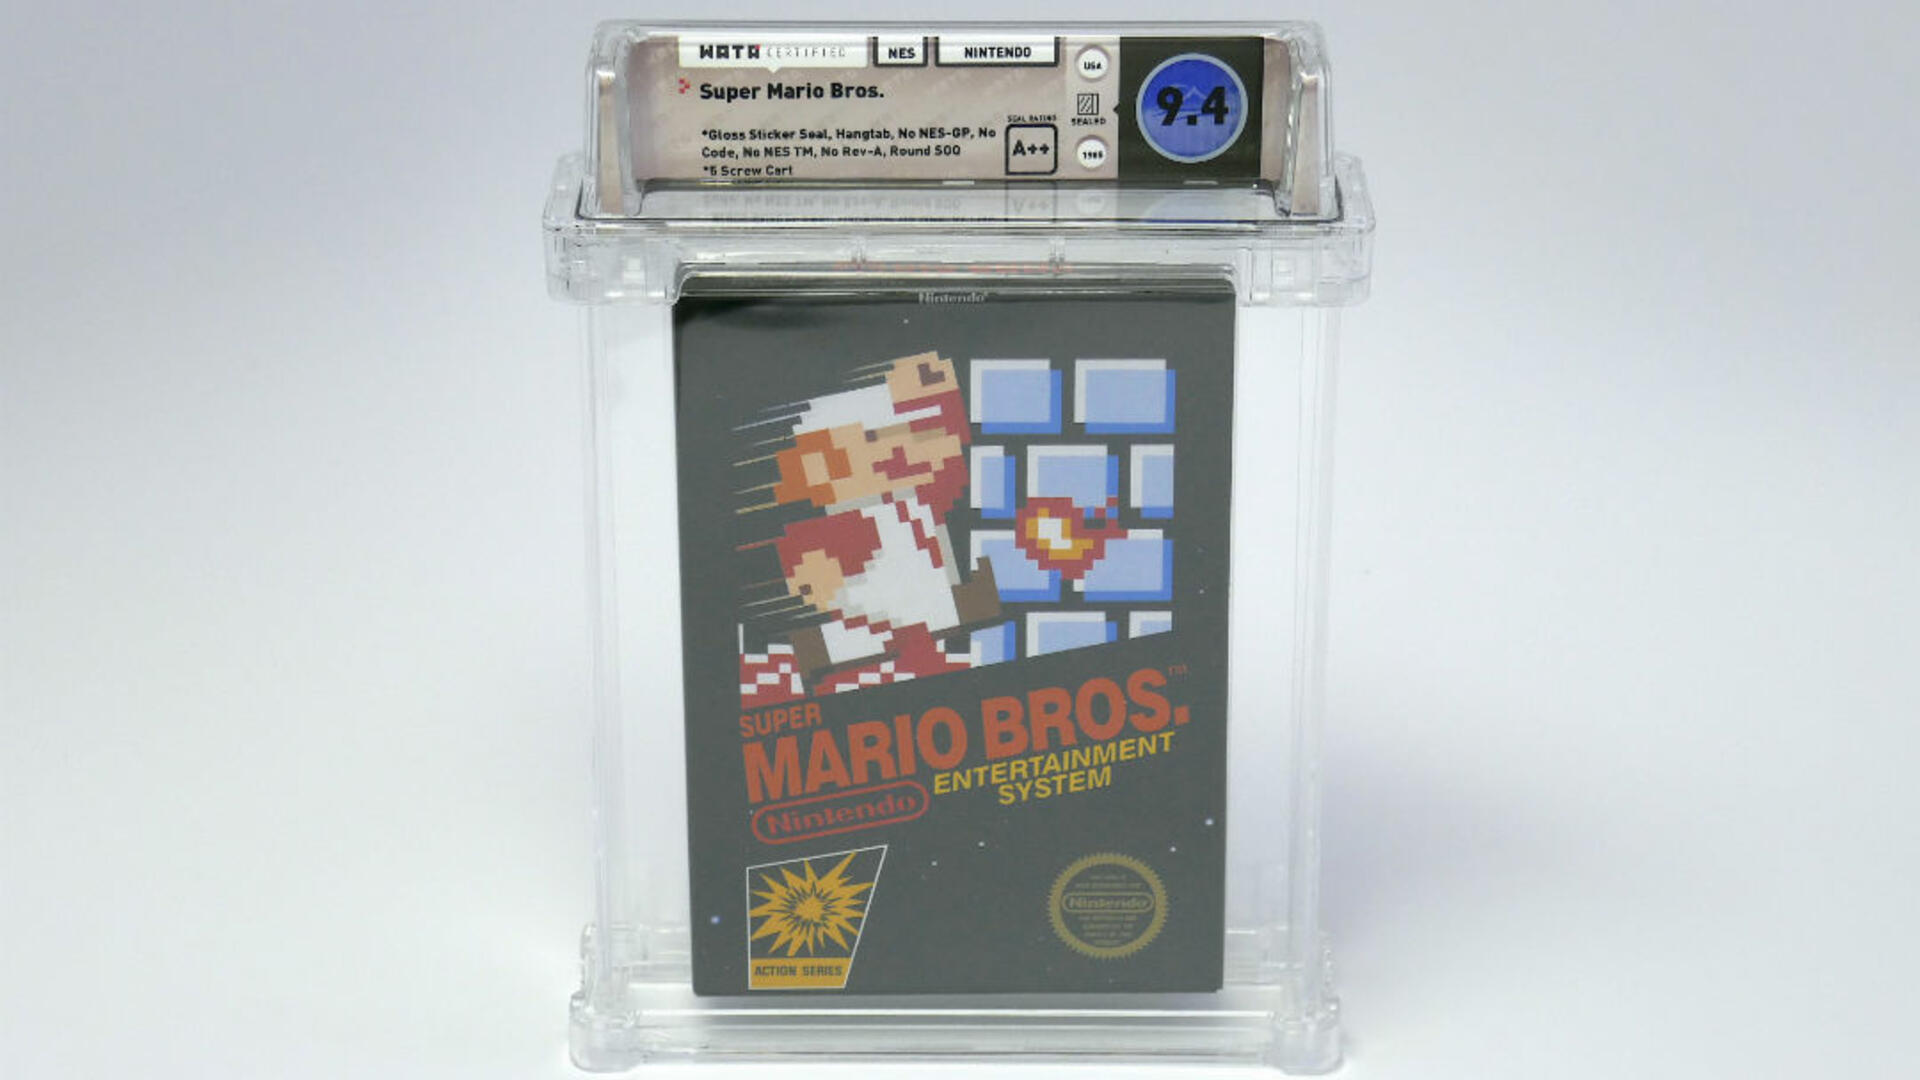 Mint Sealed Copy of Super Mario Bros. Sells for More Than $100,000 at Auction